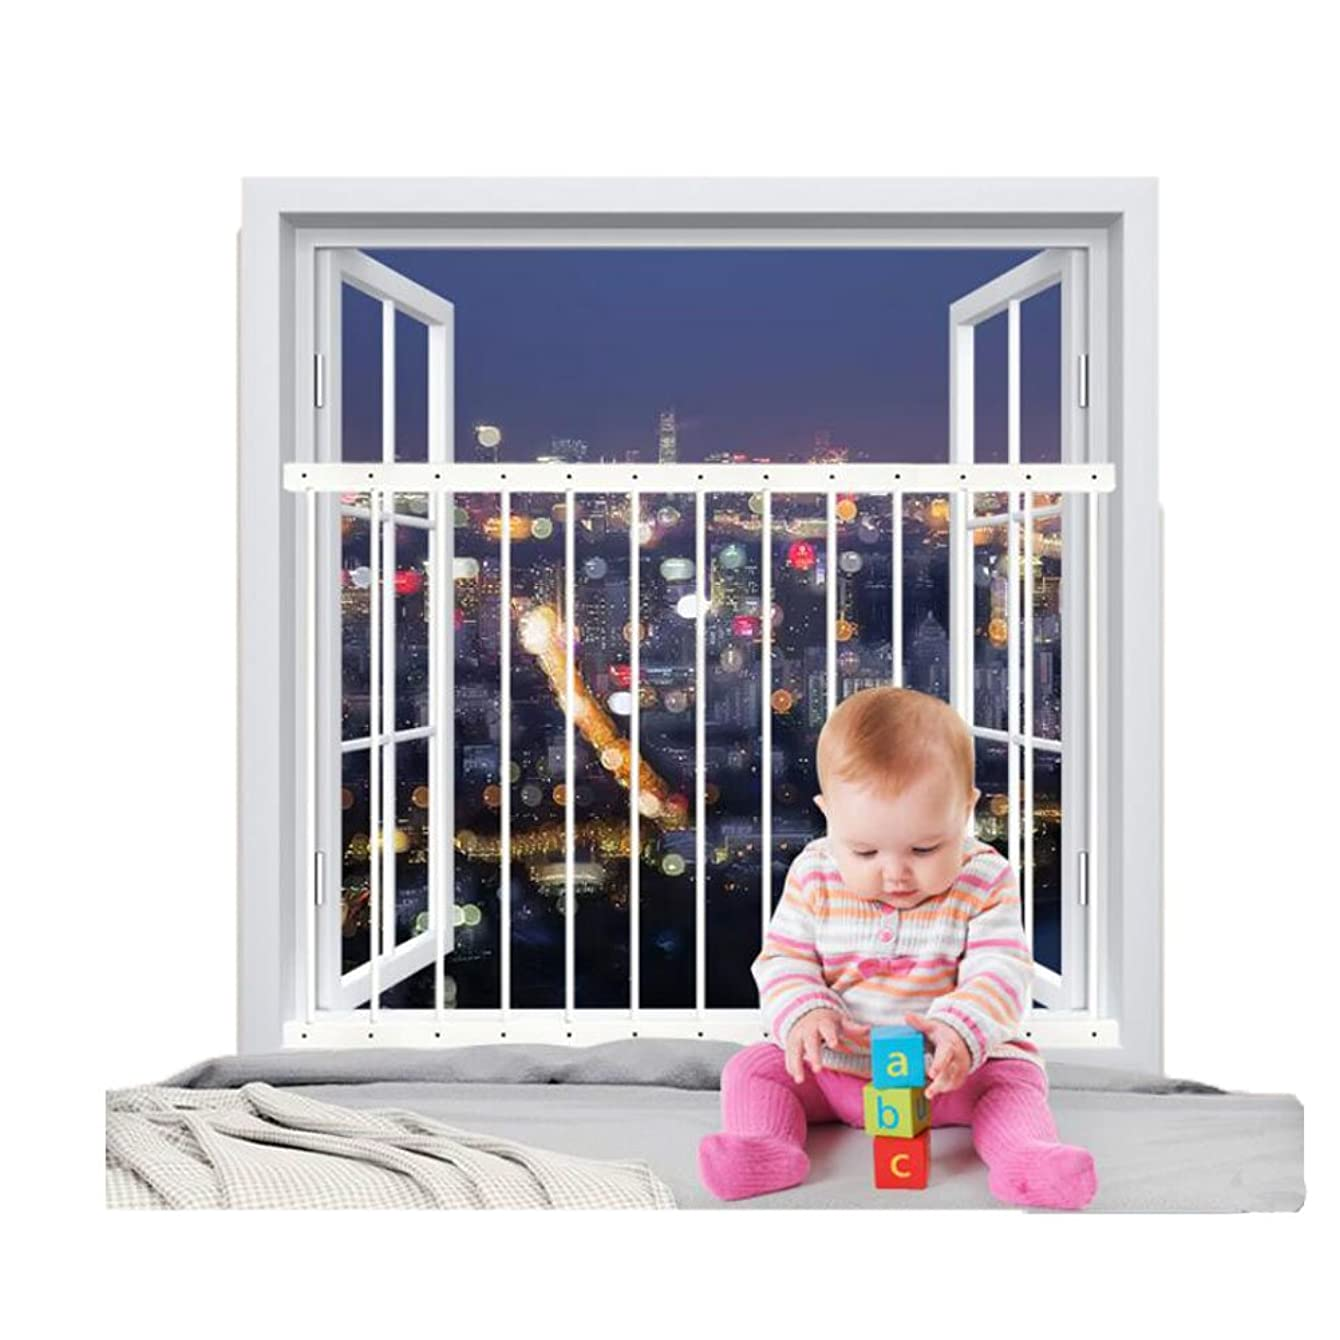 Fairy Baby Window Guards for Children Hole-Free Installation Todder Safety Window Gate Bars White,36.22